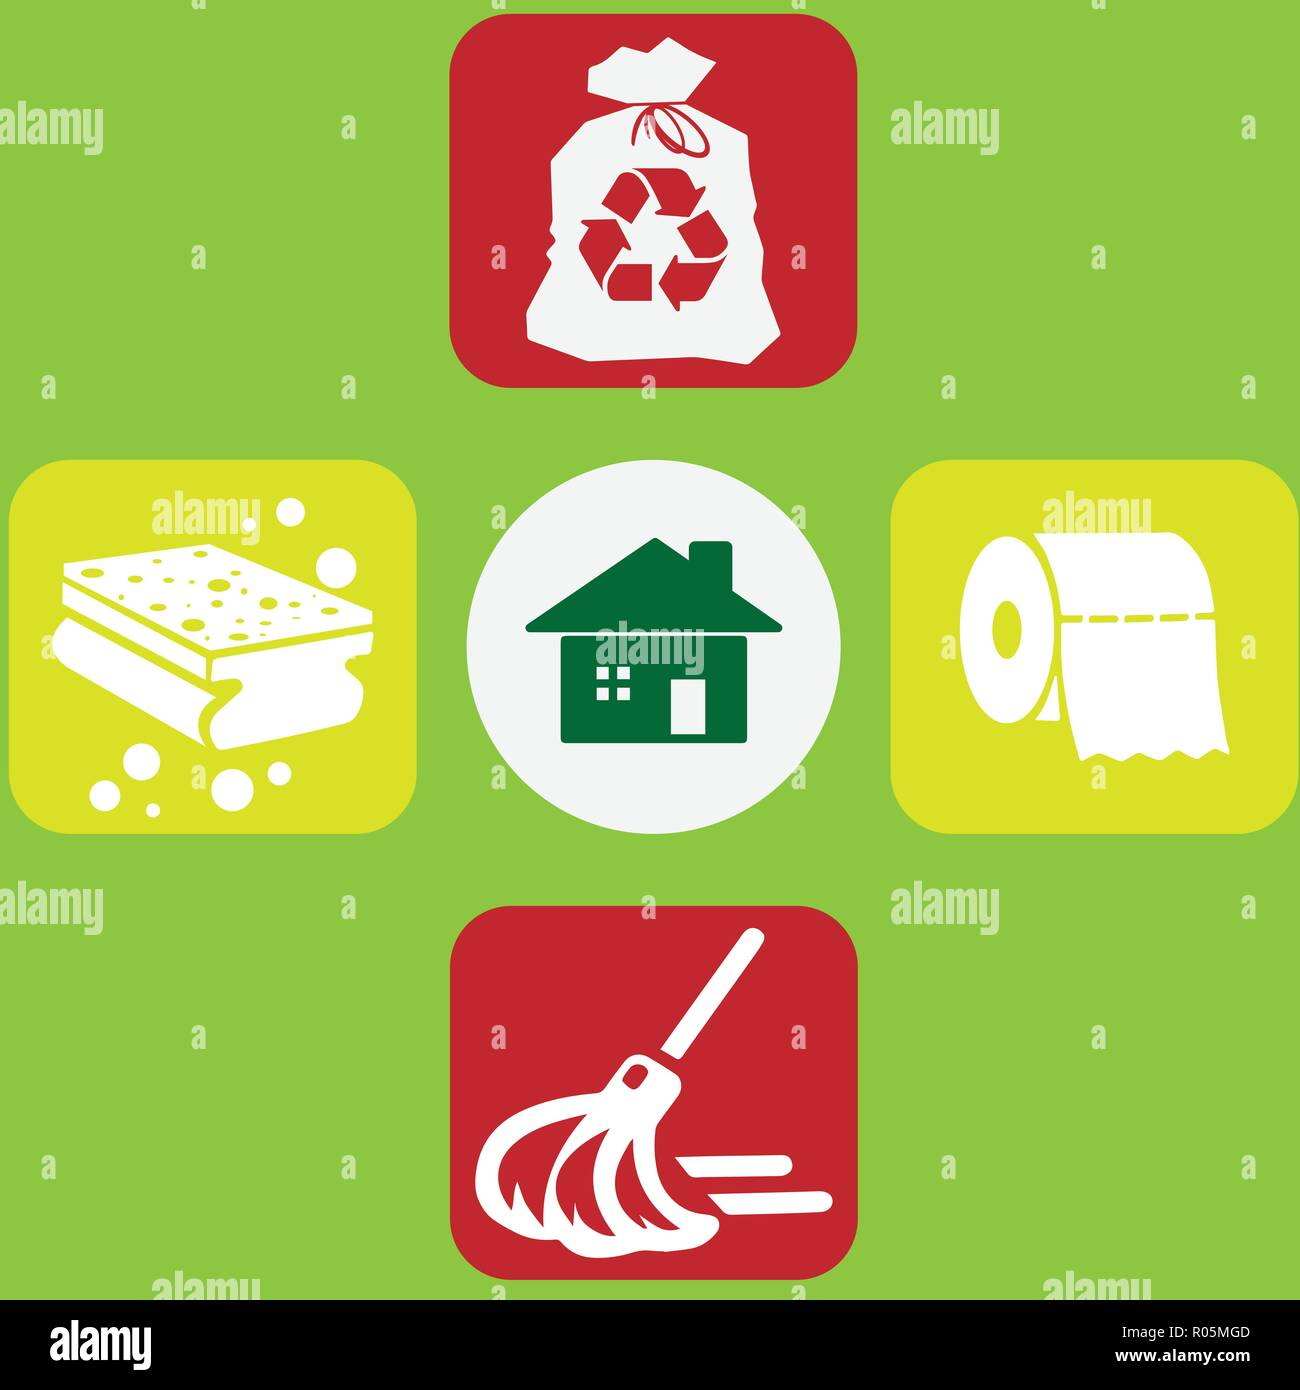 Household cleaning objects: sponge, broom, toilet paper, bag - Stock Vector